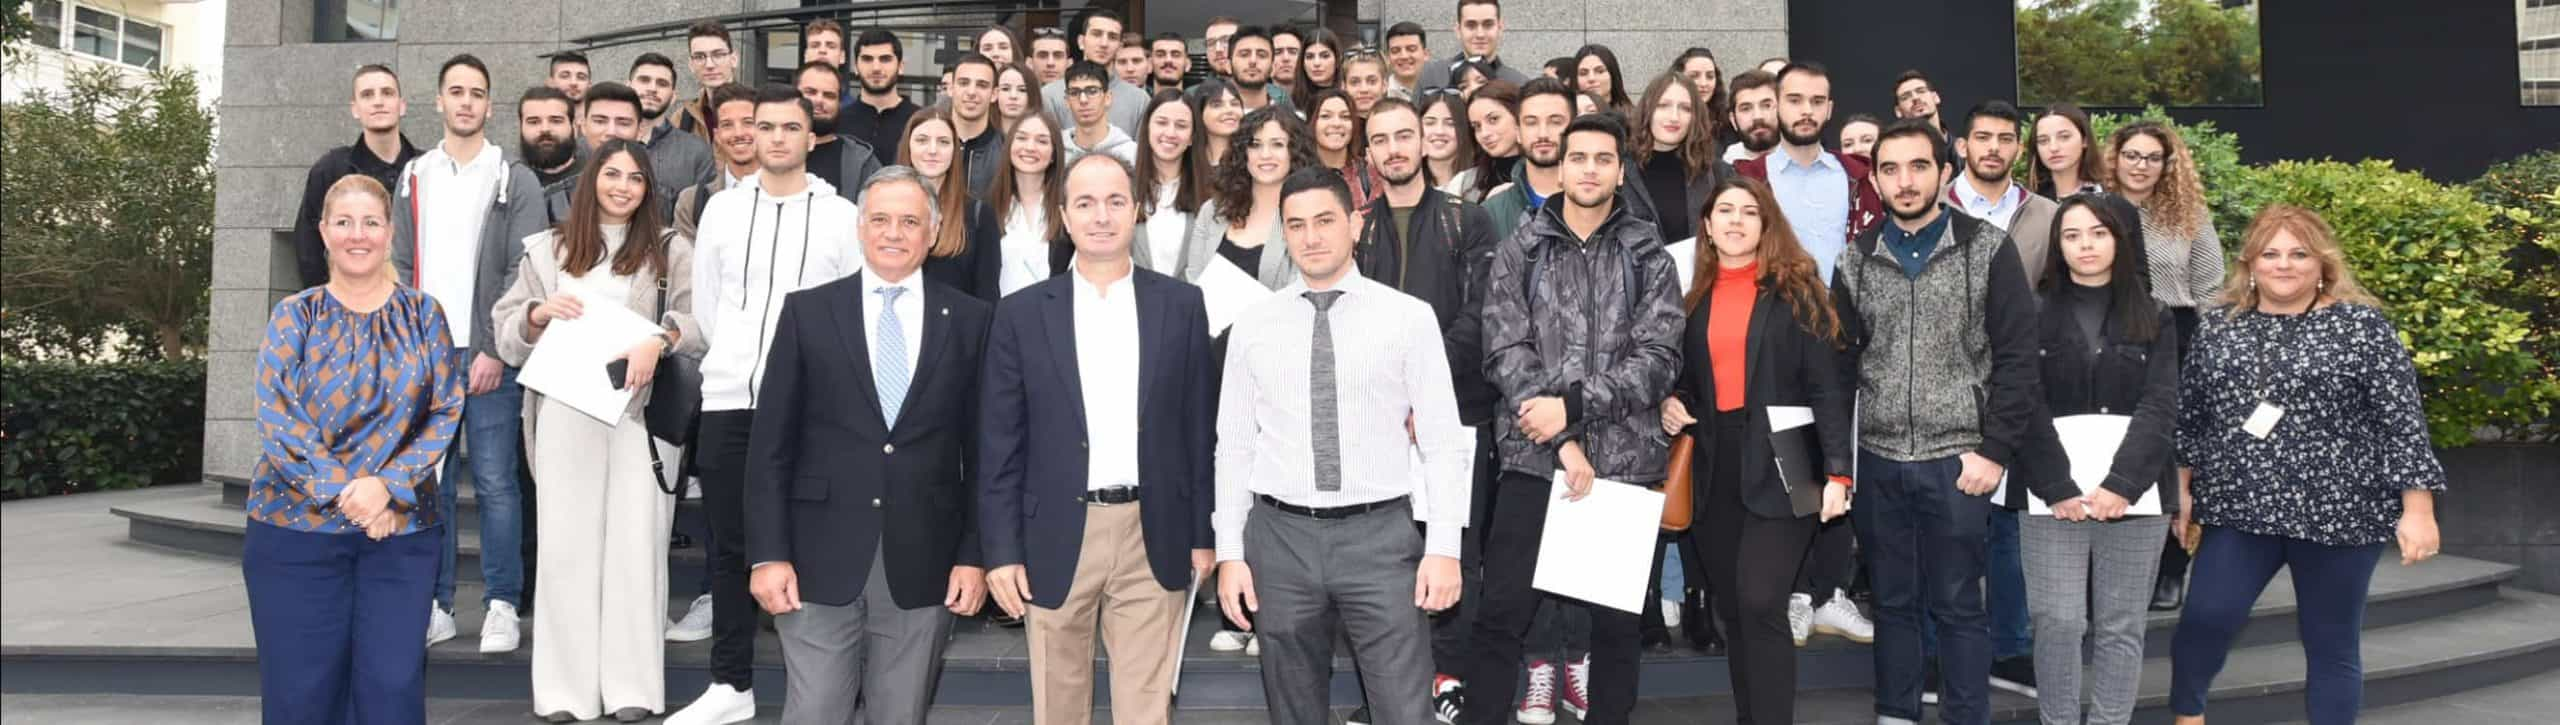 1st round of applications for the 2020-2021 intake for the Master of Science in Shipping Management